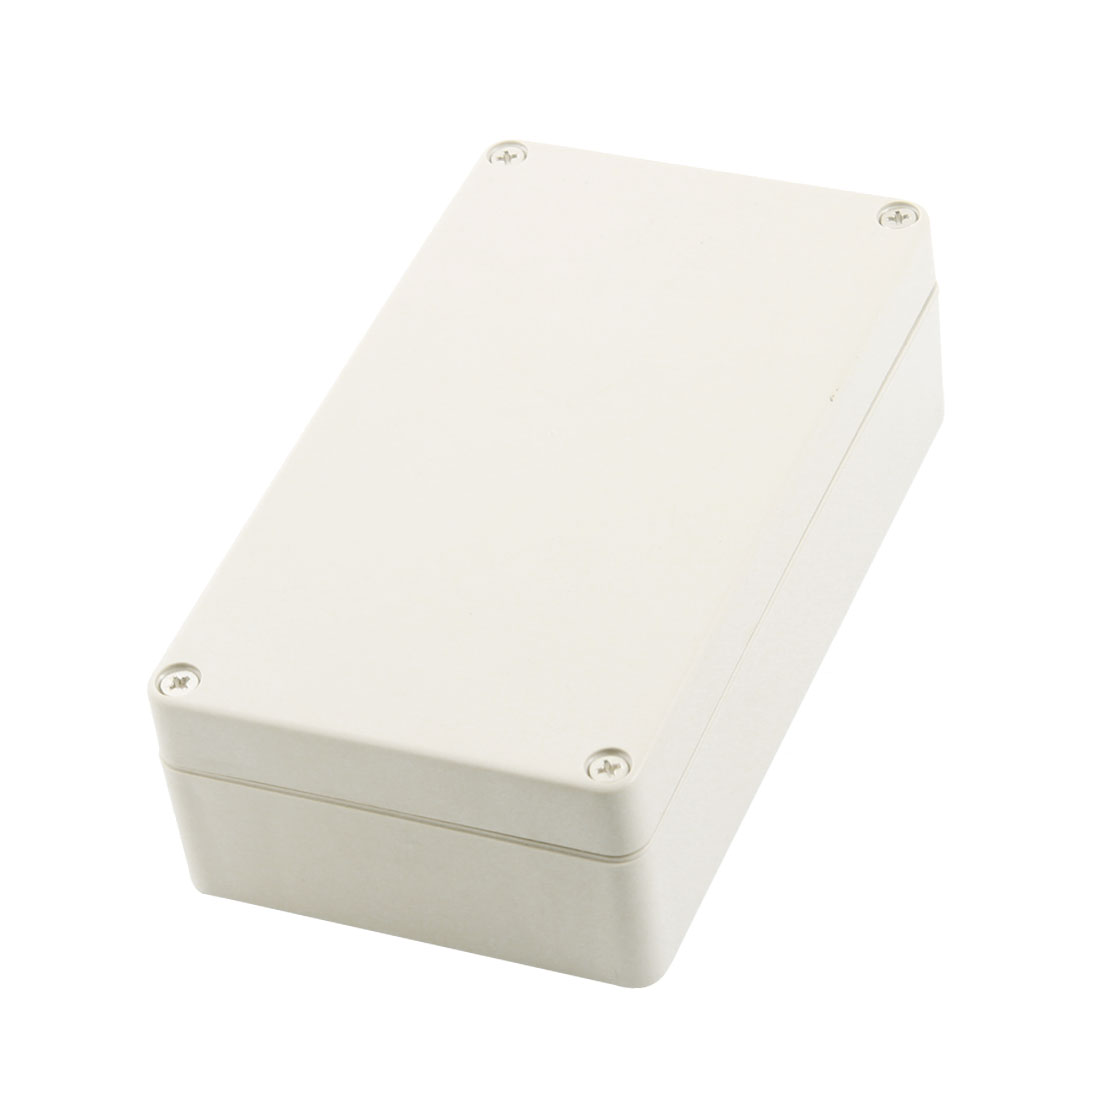 160mm x 90mm x 50mm Waterproof Plastic Sealed DIY Joint Electrical Junction Box